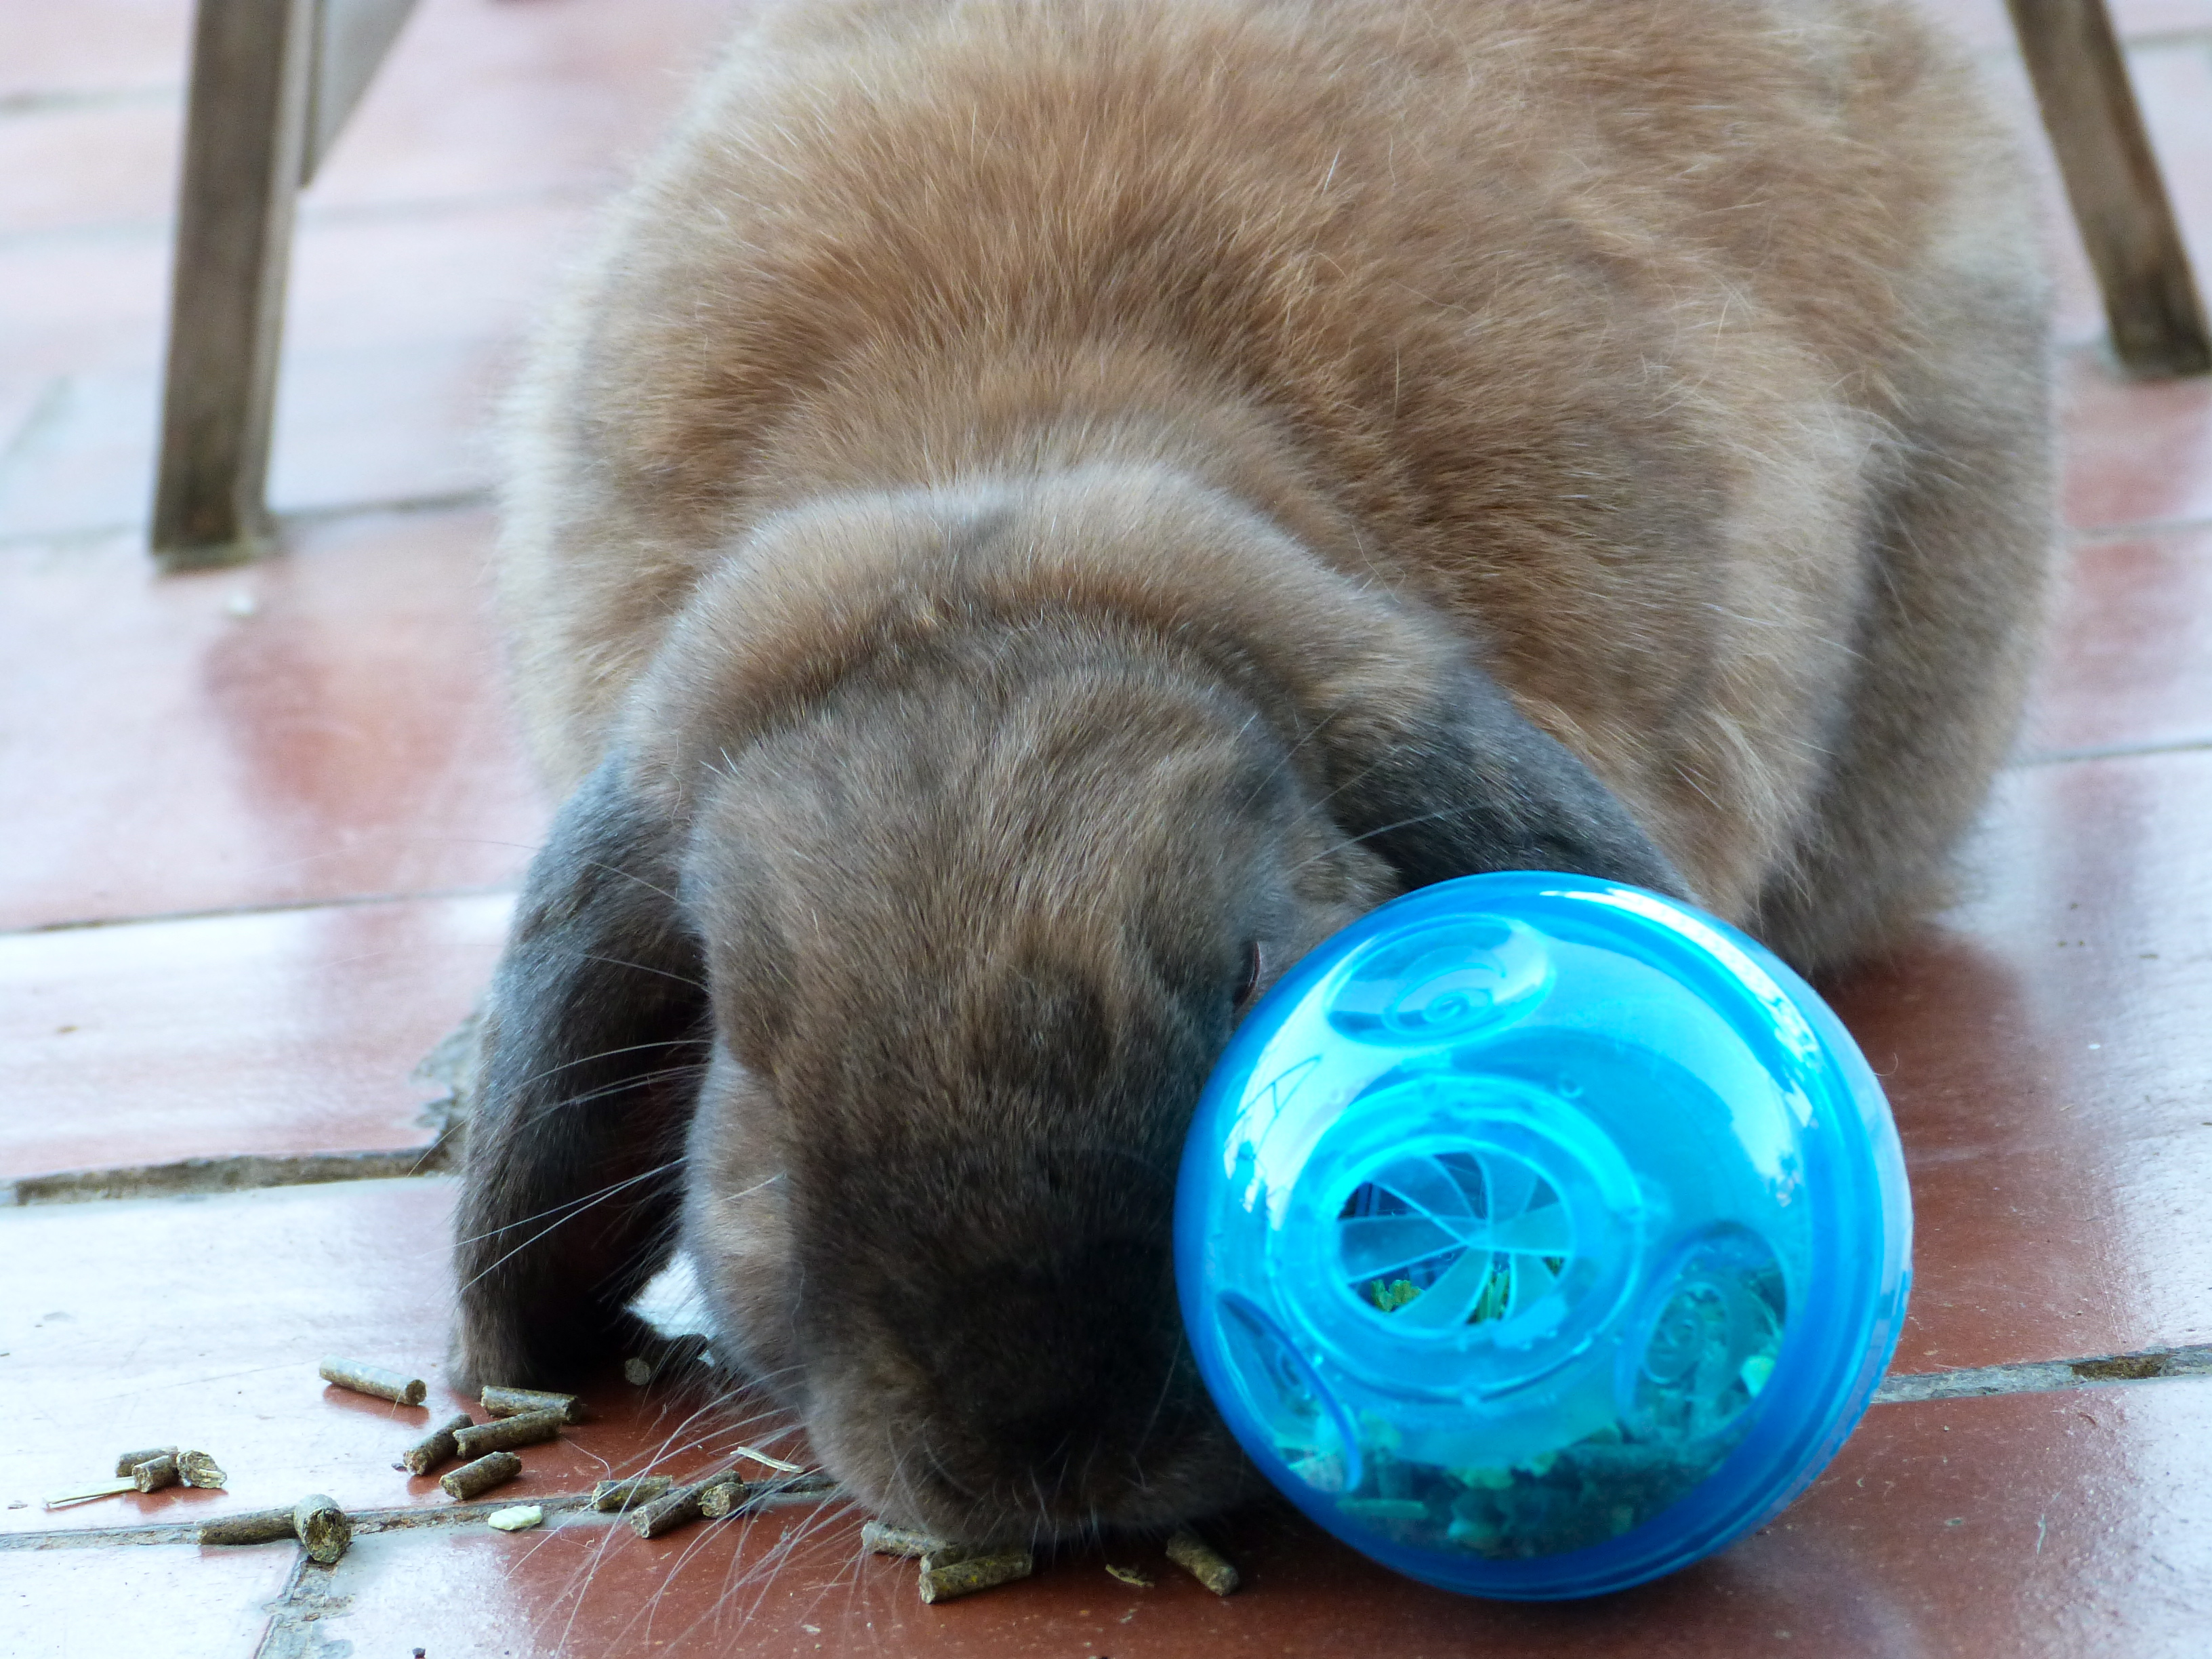 Chewy and the treat ball, Animal, Food, Toy, Rabbit, HQ Photo